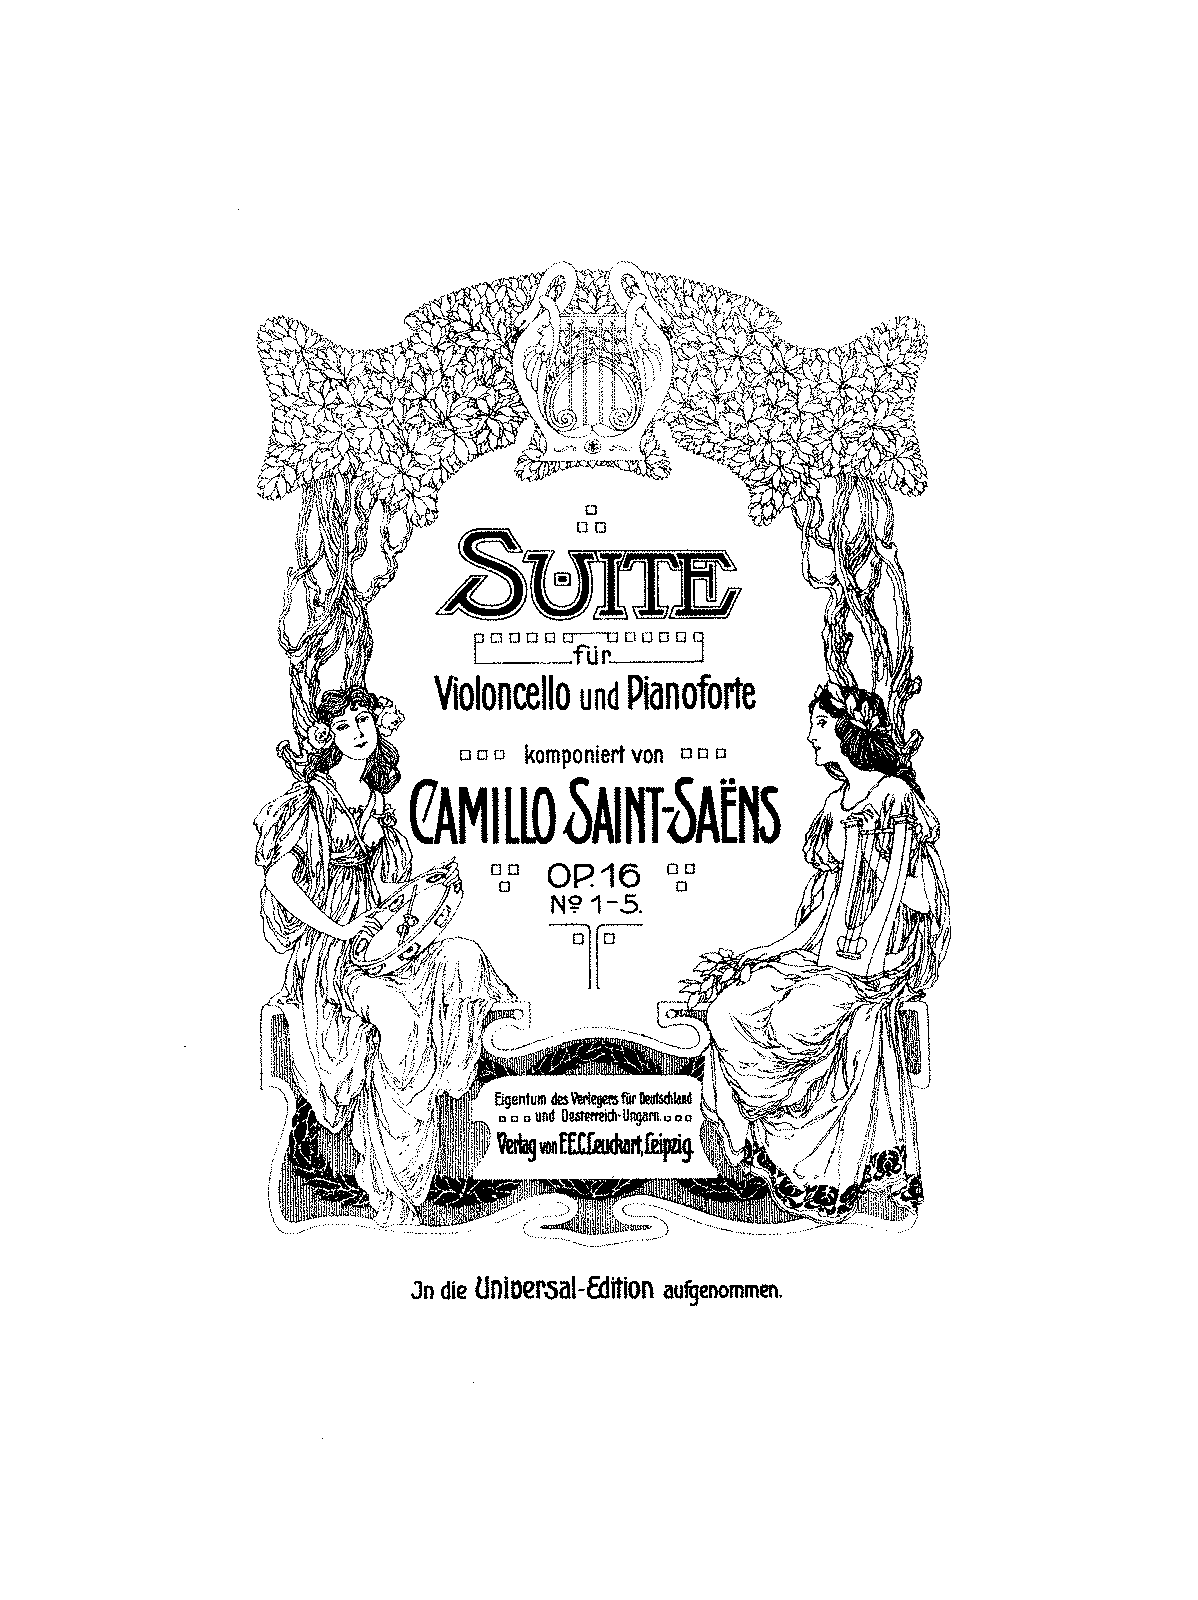 PMLP53100-Saint-Saens - Suite Op16 for Cello and Piano.pdf